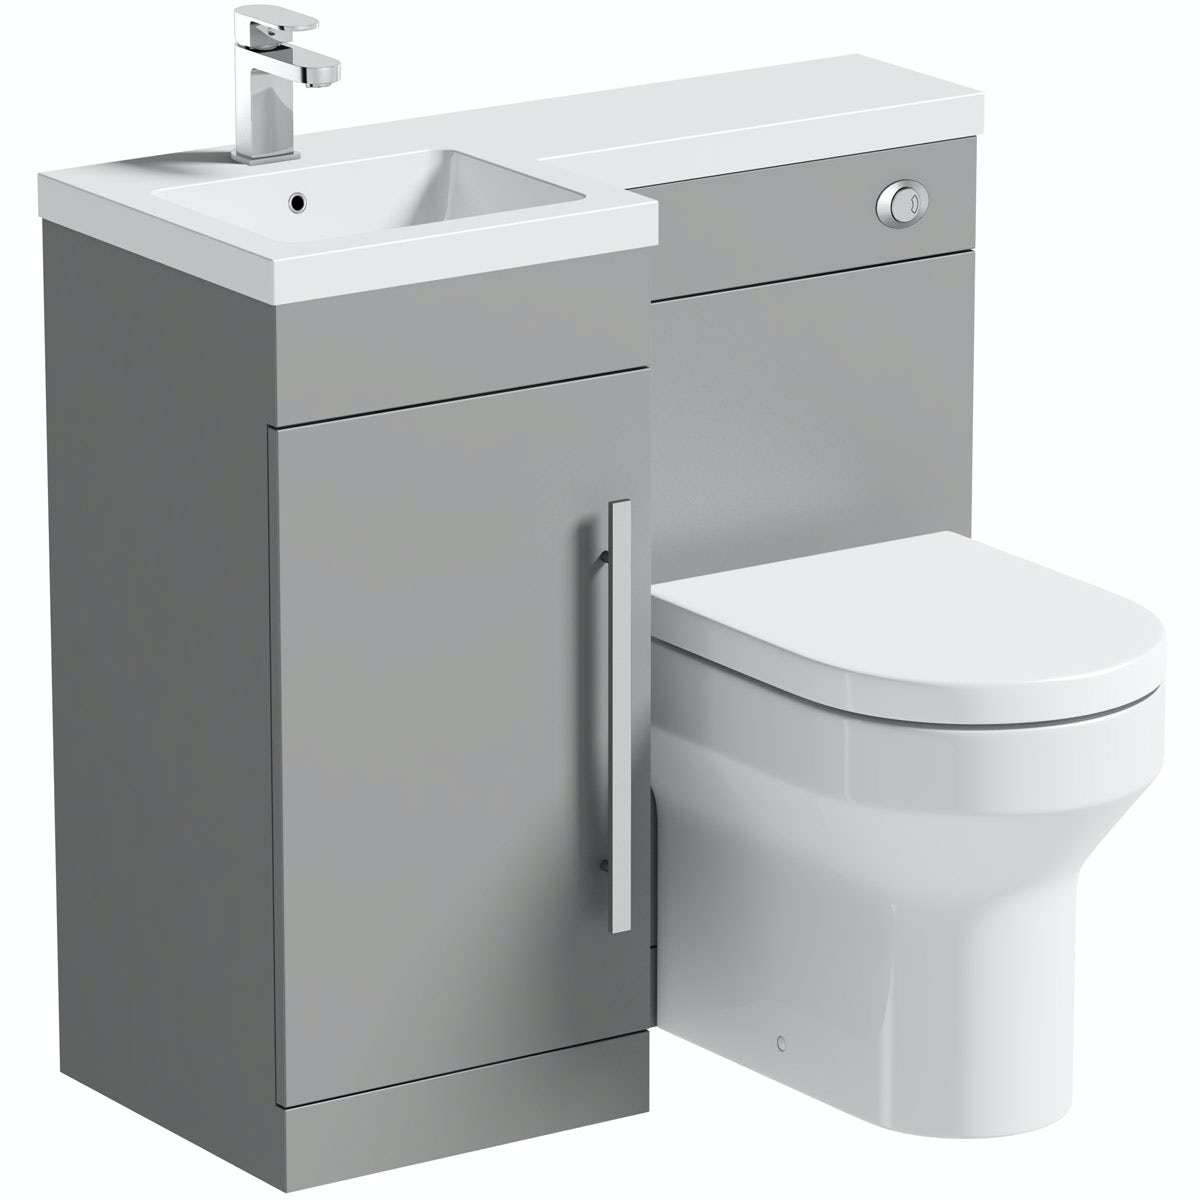 Orchard MySpace grey left handed combination unit with Wharfe toilet